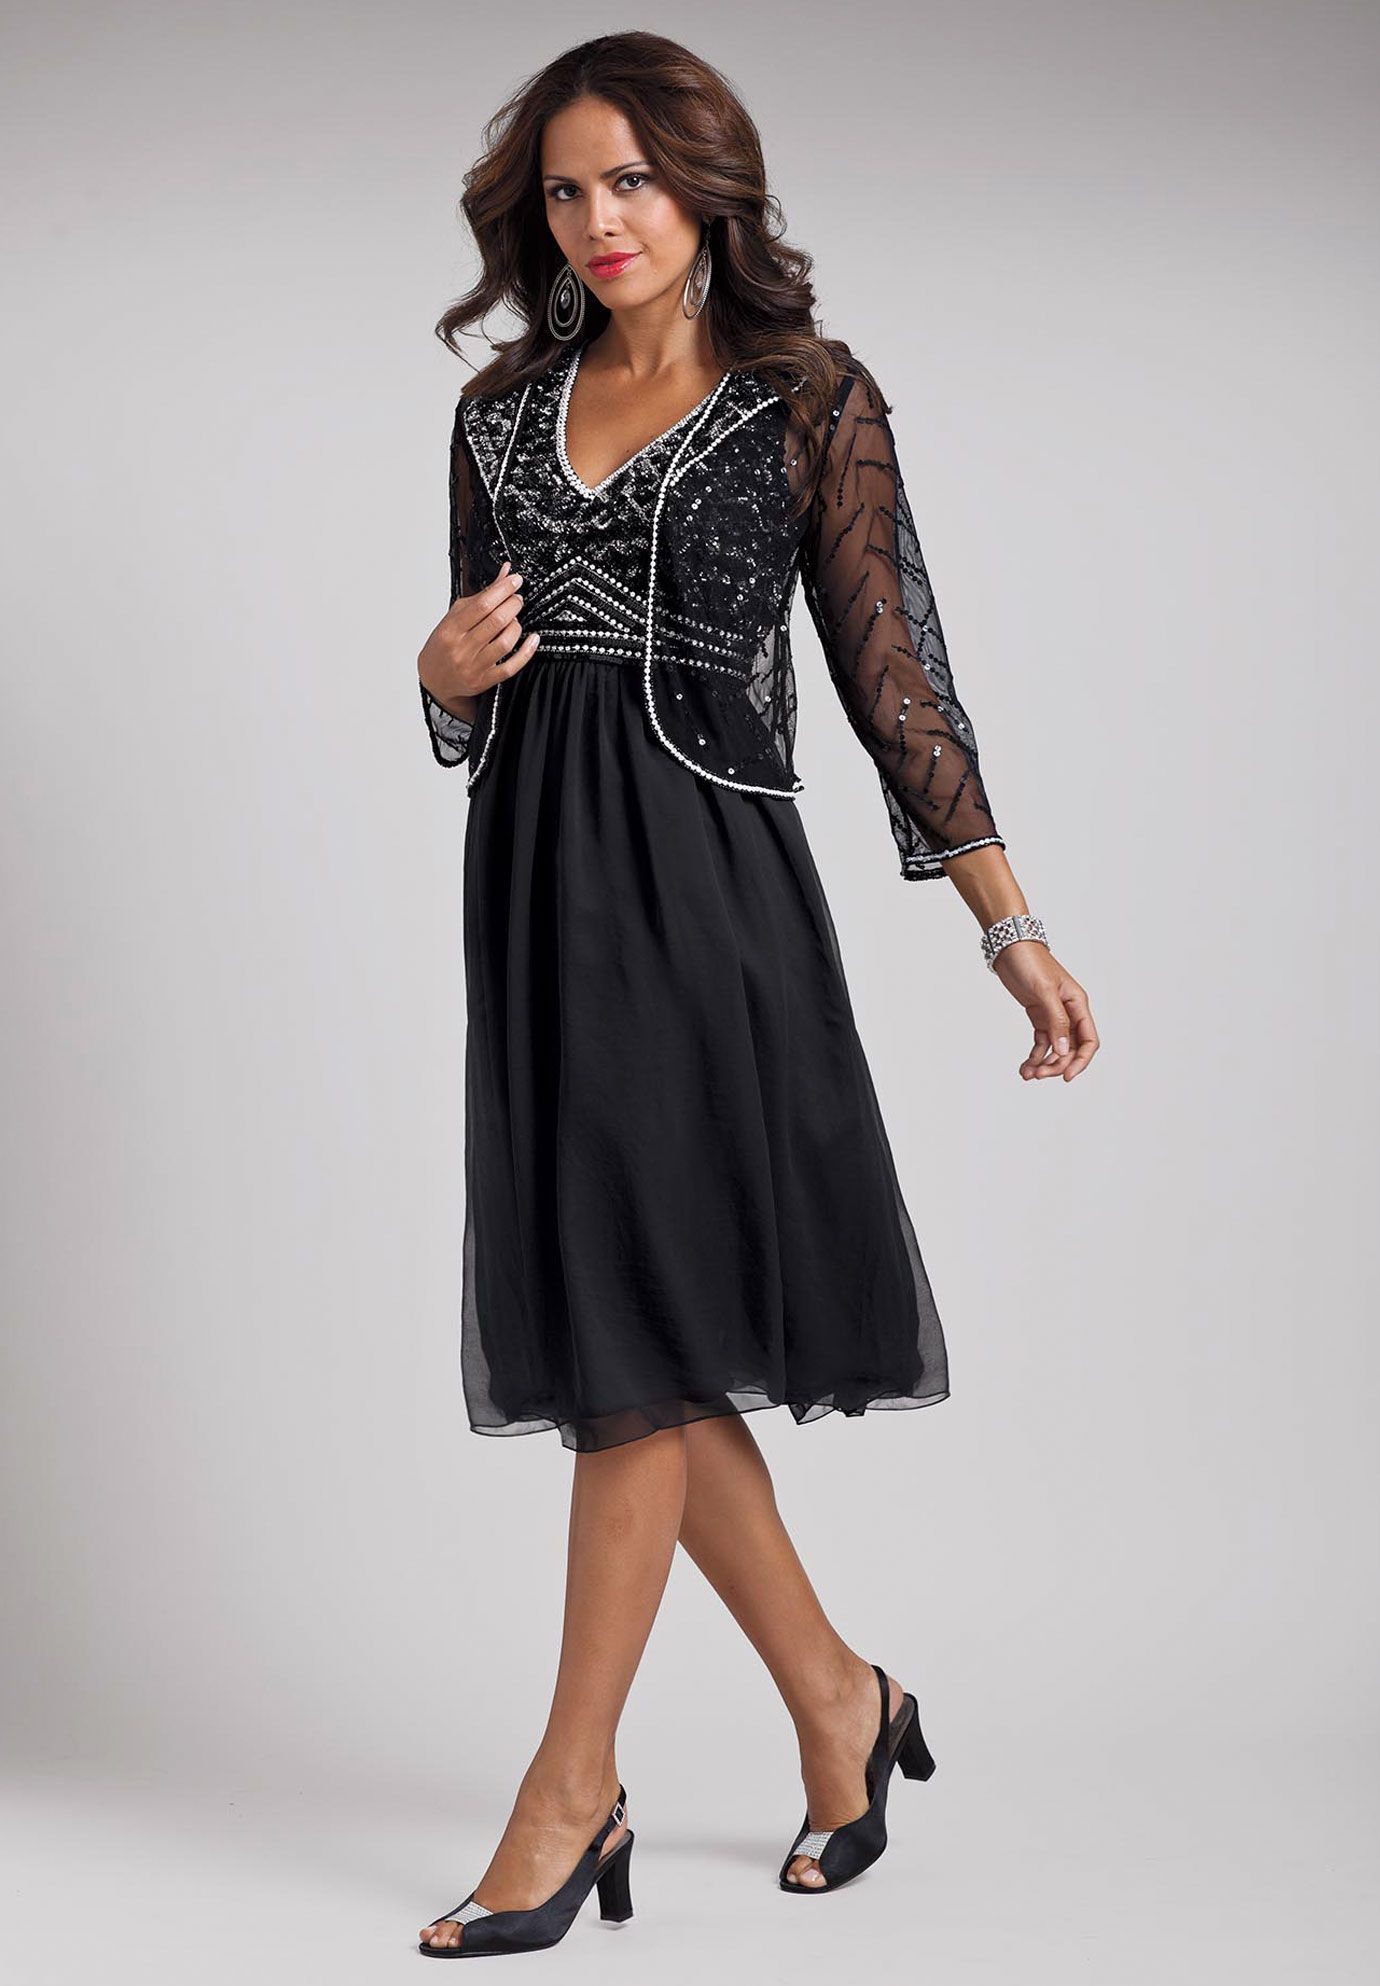 Plus Size Beaded Chiffon Jacket and Empire Dress | Plus Size Special ...